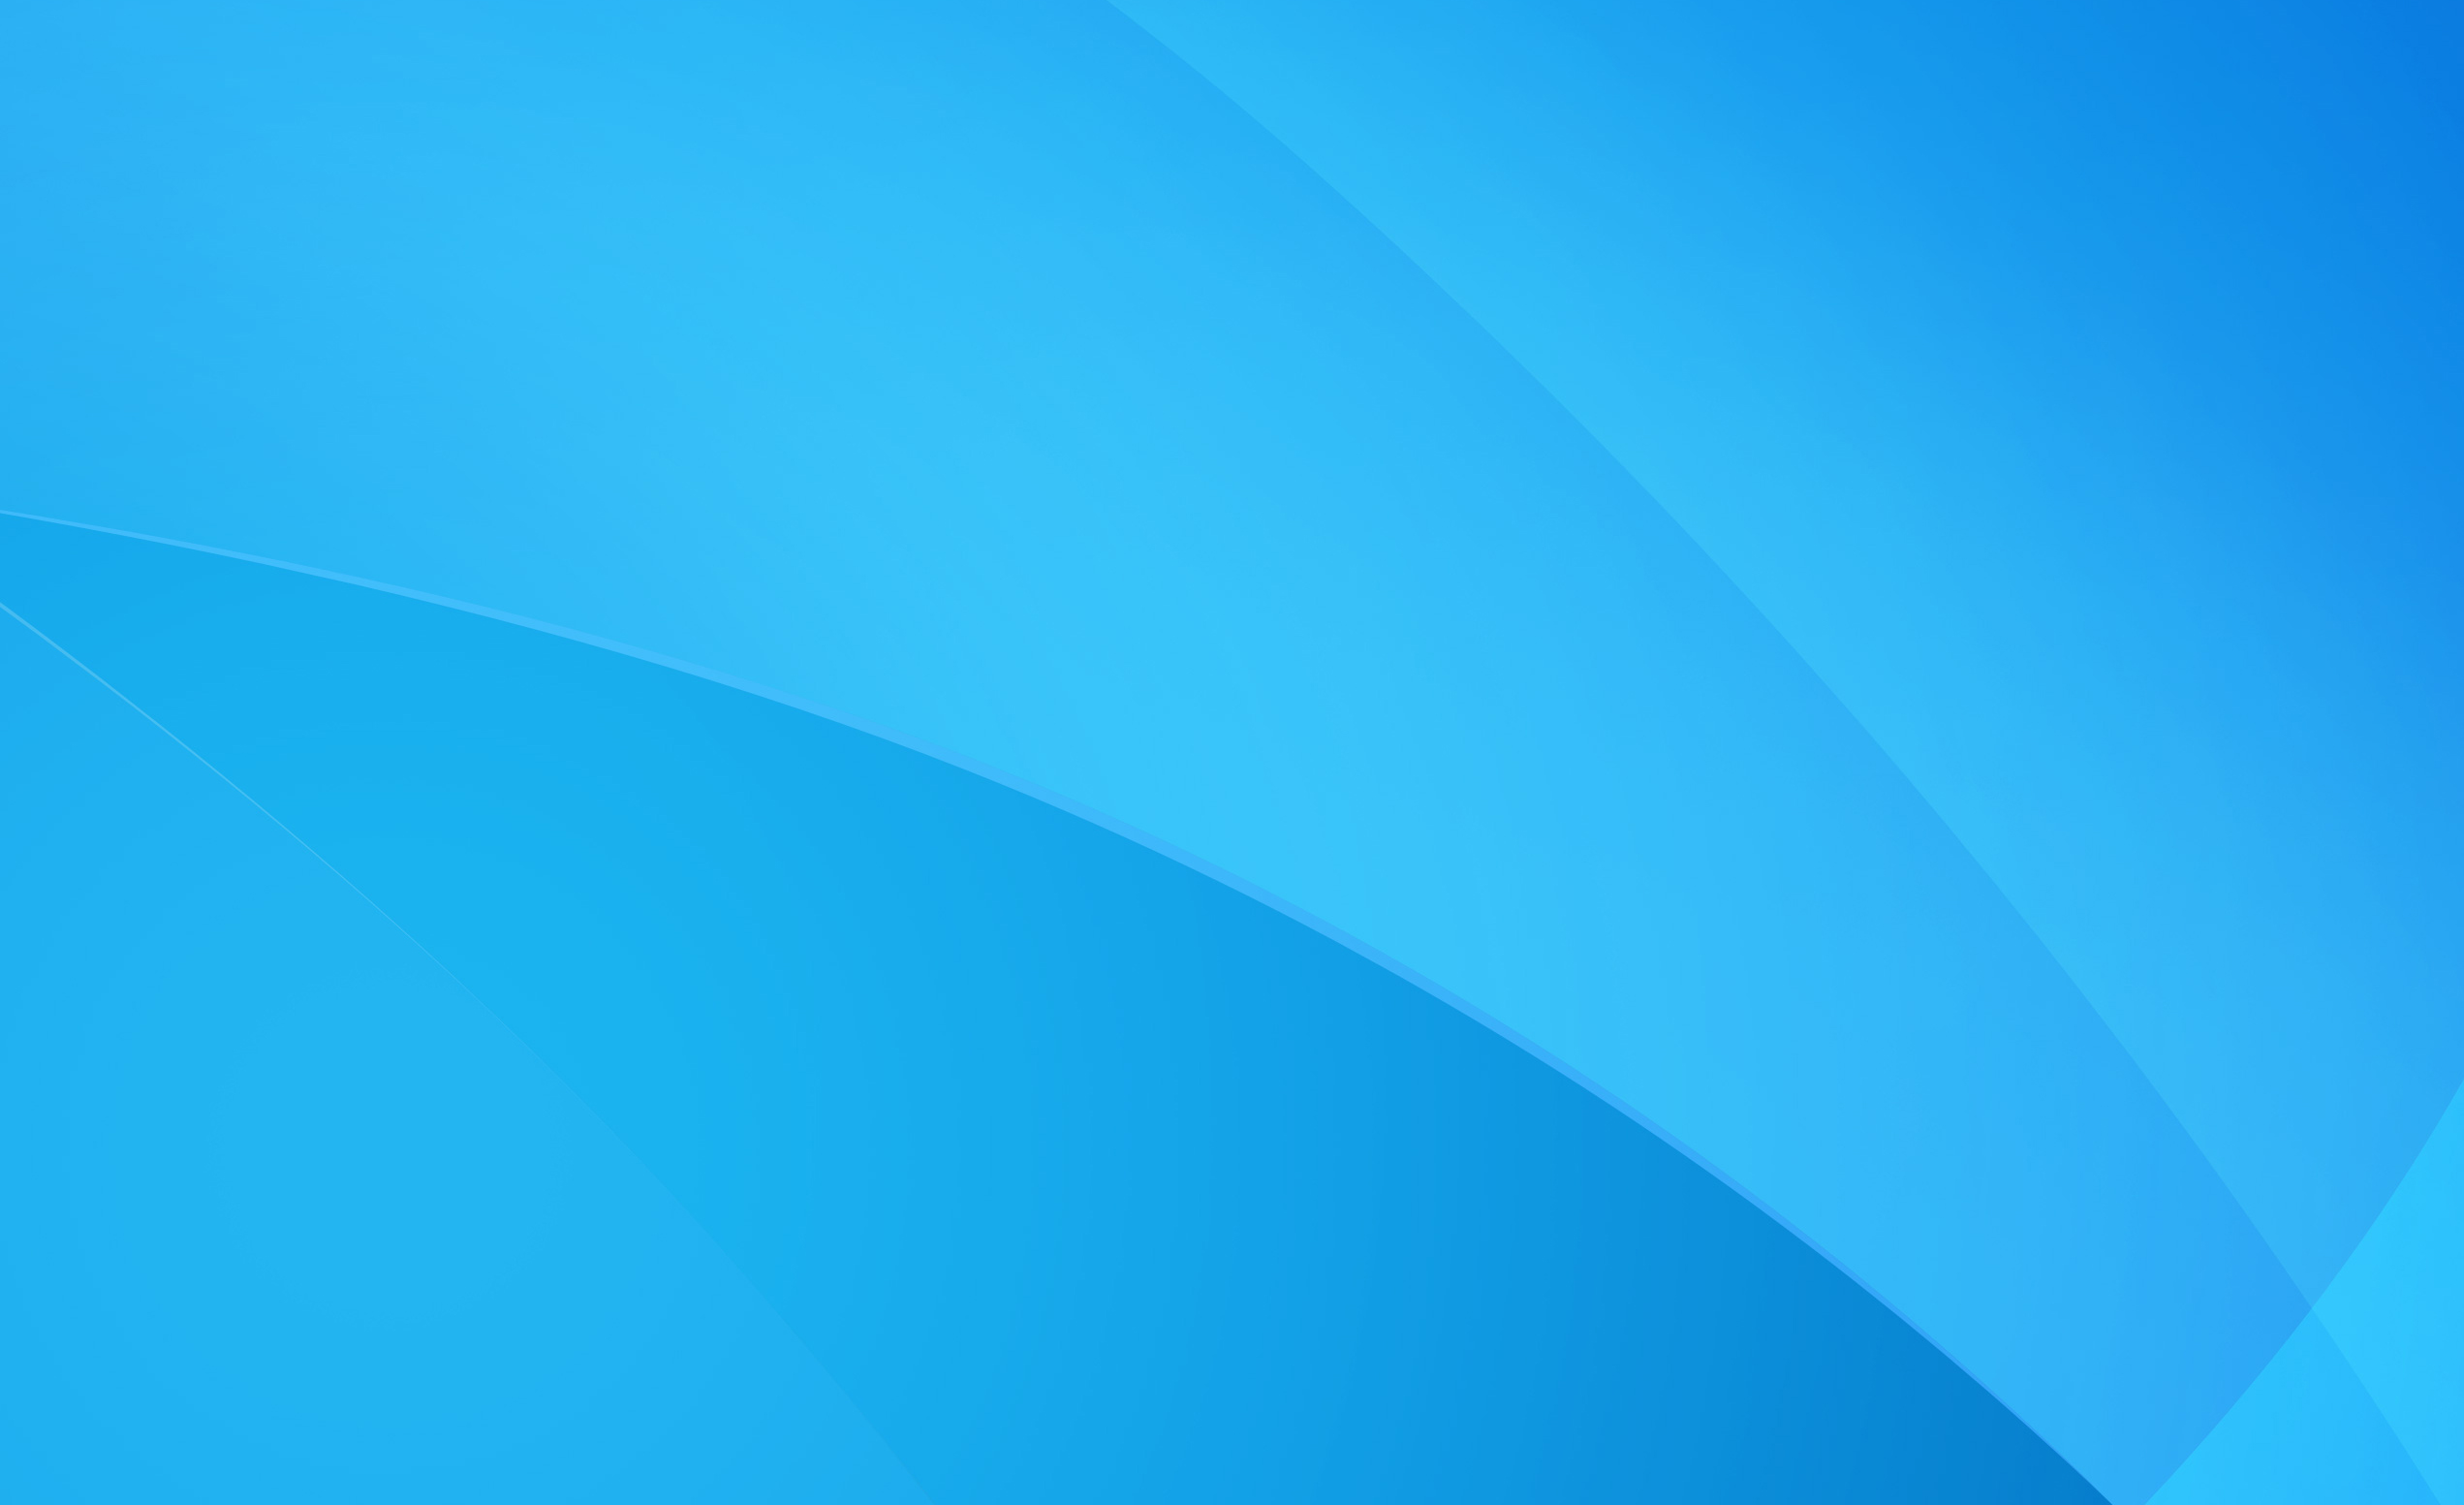 blue abstract background 2543x1553